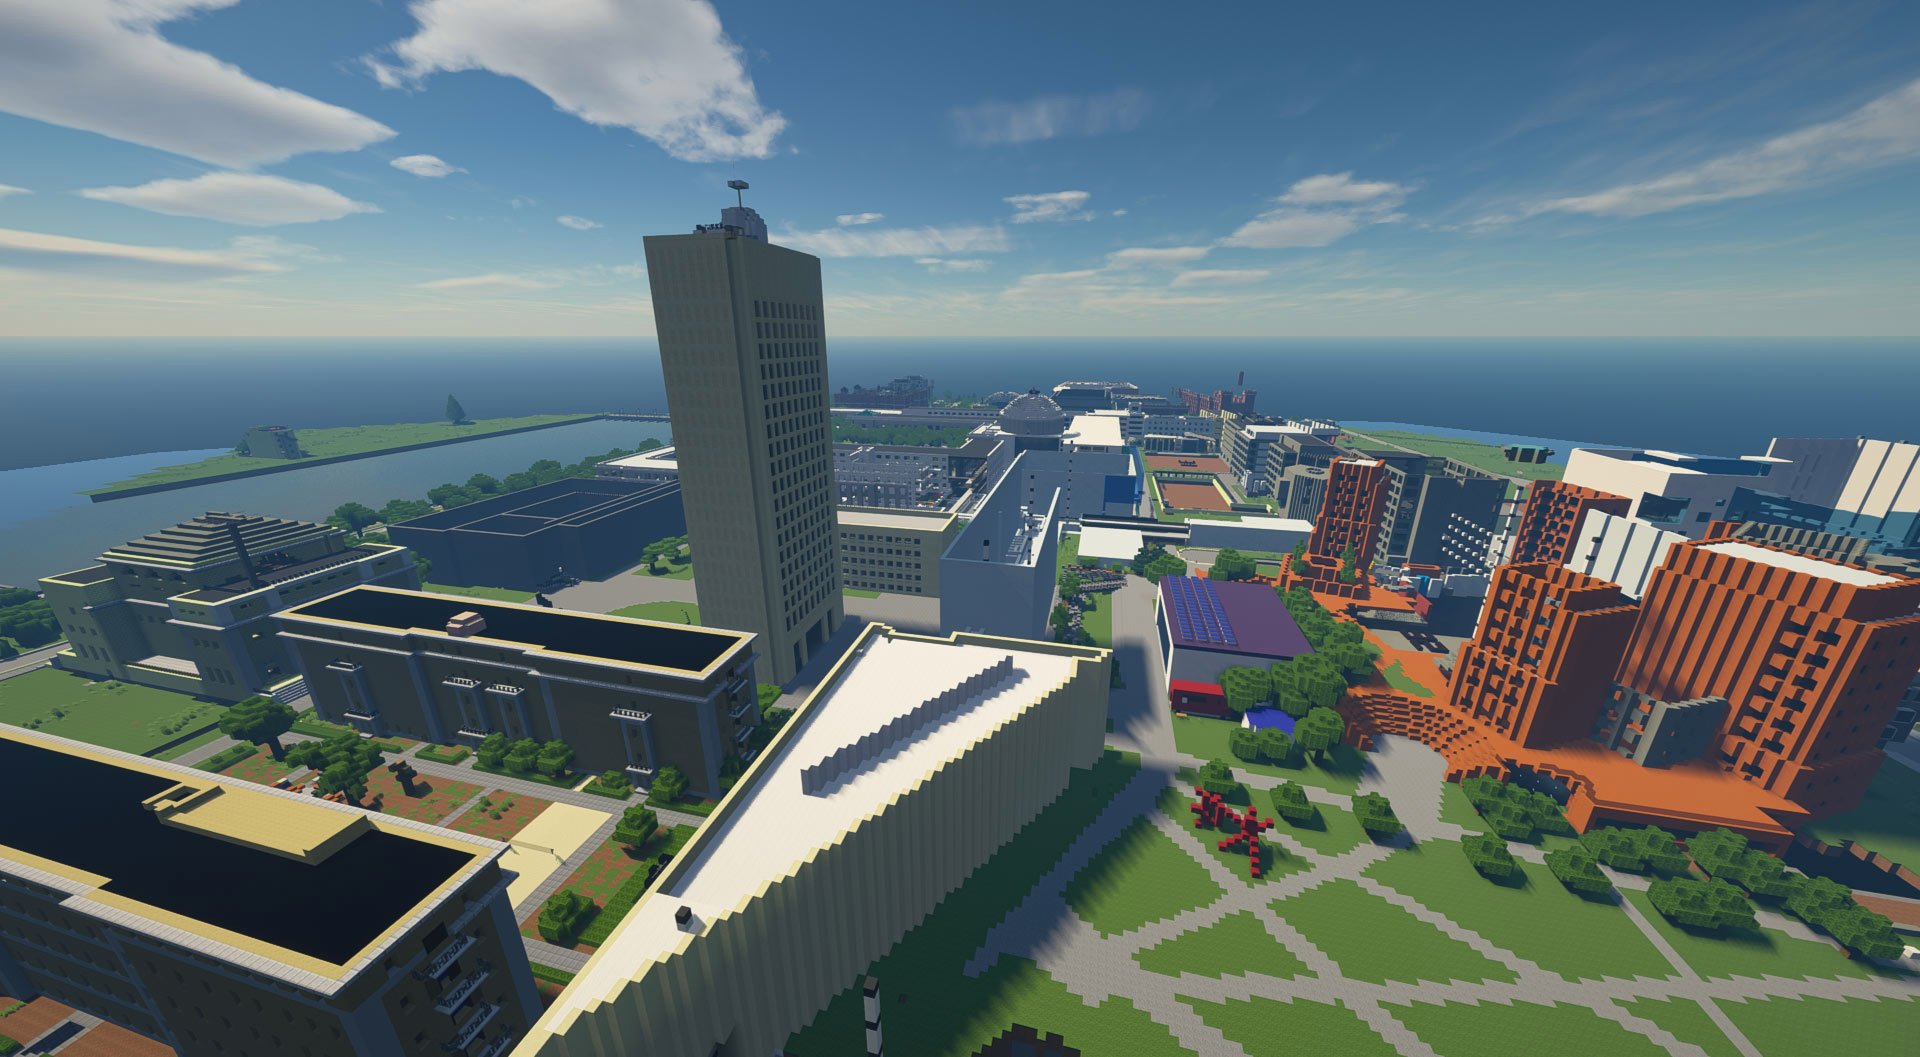 MIT Undergrads Recreate The Campus On Minecraft: Creating The Minecraft Institute of Technology